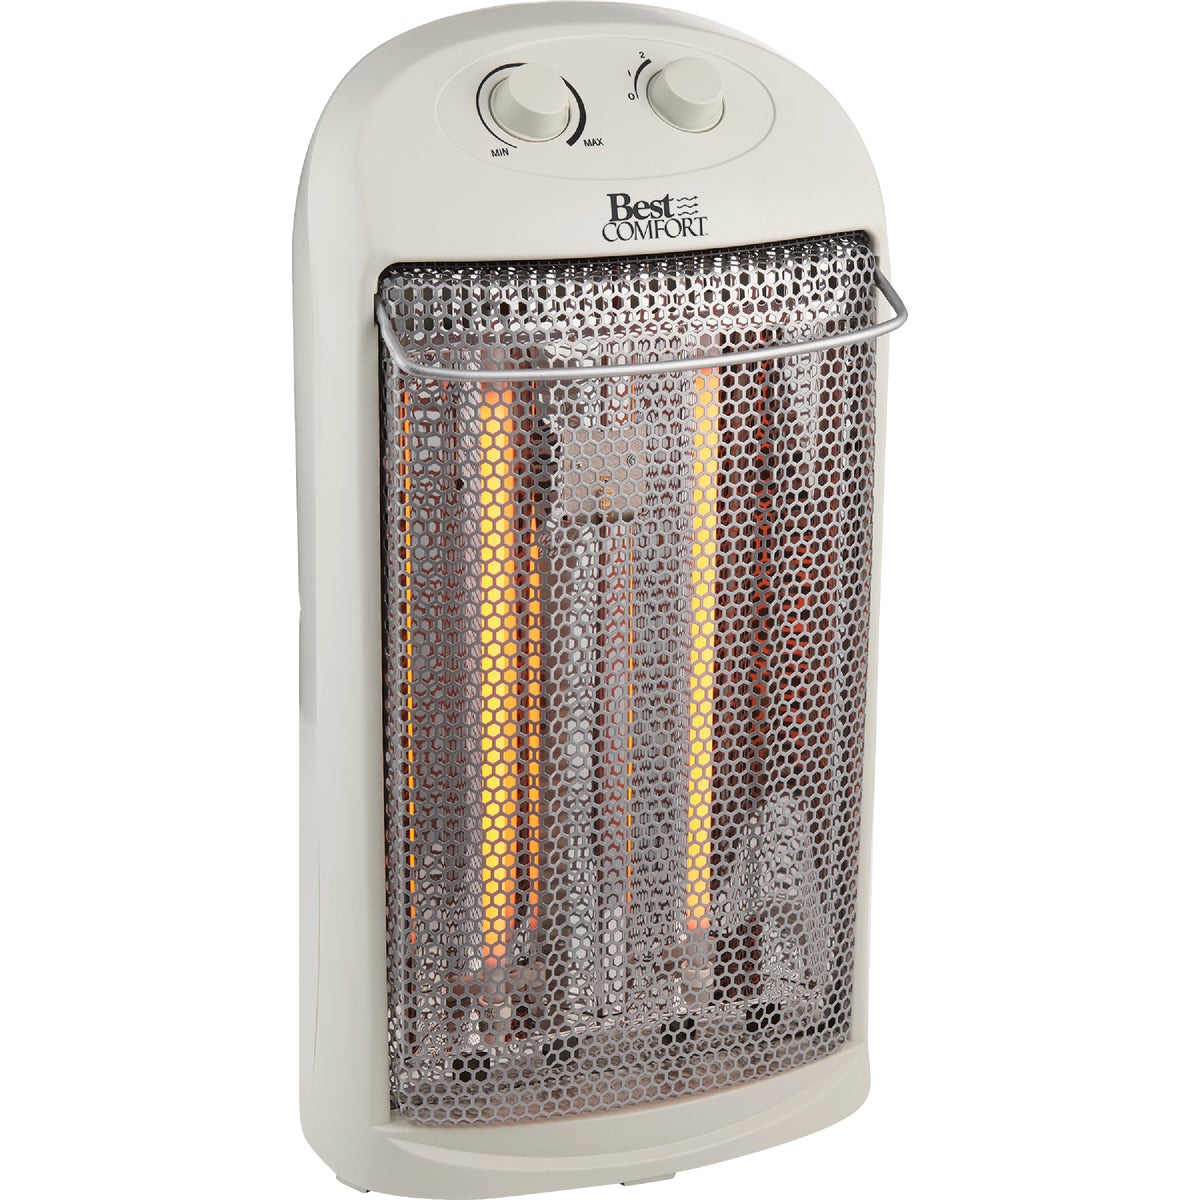 TOWER QUARTZ HEATER - HQH307-UM by Holmes Jarden